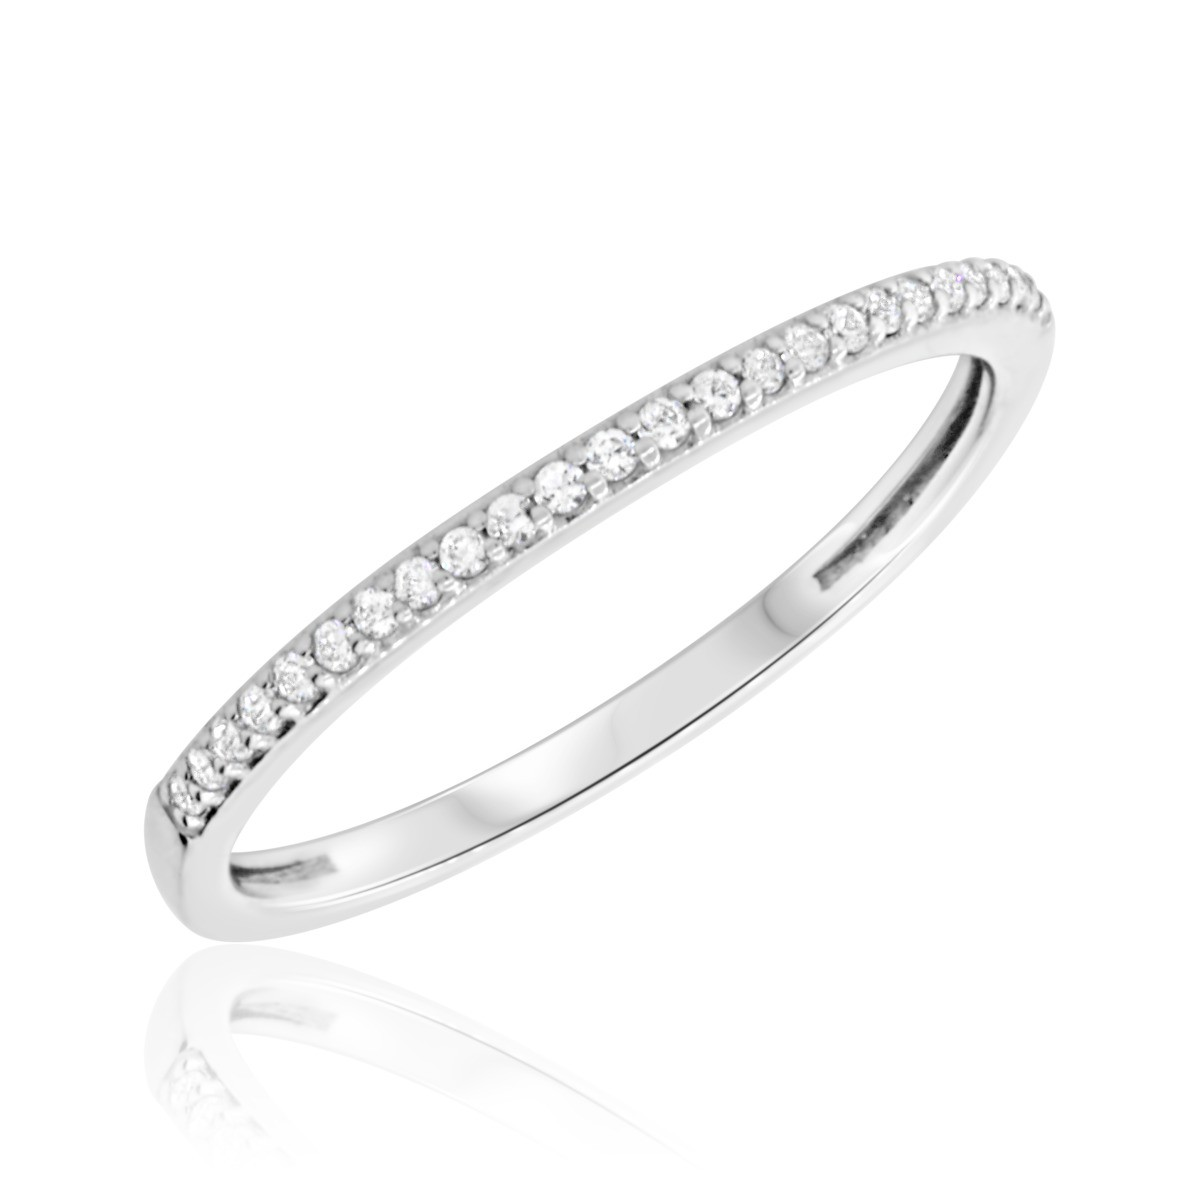 1/10 CT. T.W. Diamond Ladies Wedding Band 10K White Gold